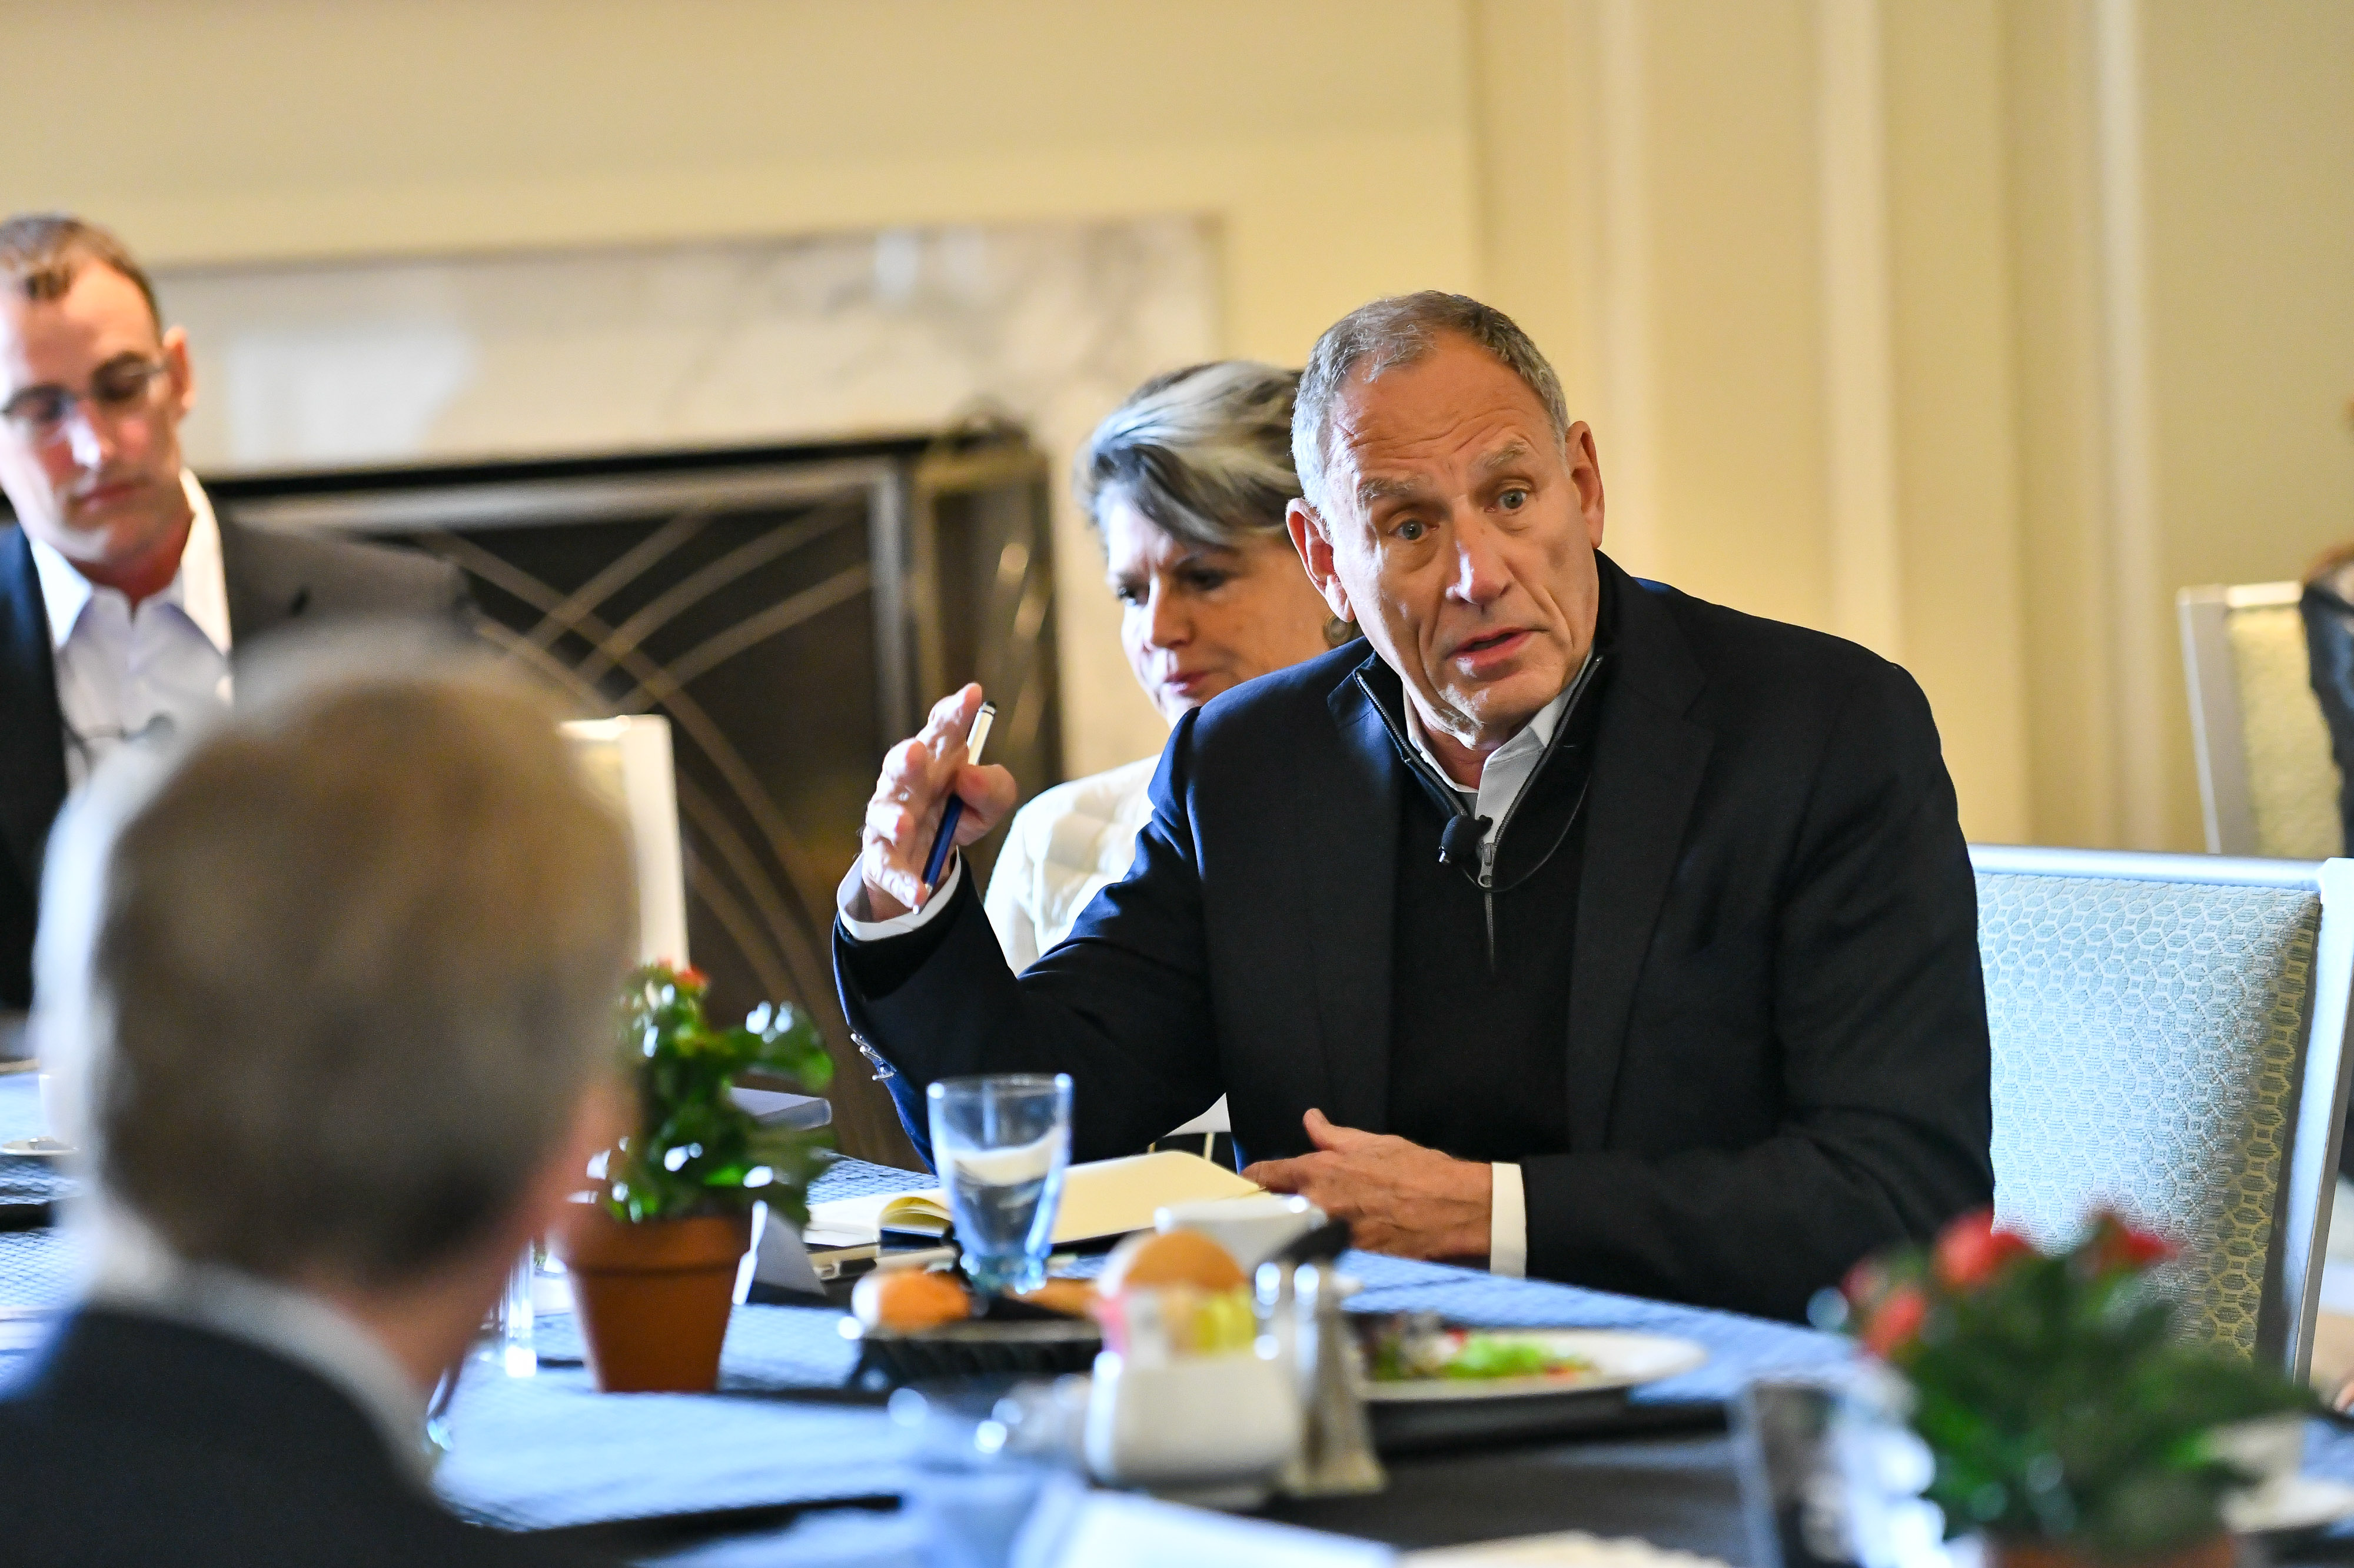 Dr. Toby Cosgrove, Former President and CEO, Cleveland Clinic talks about cutting health care costs at Fortune Brainstorm Health 2018.